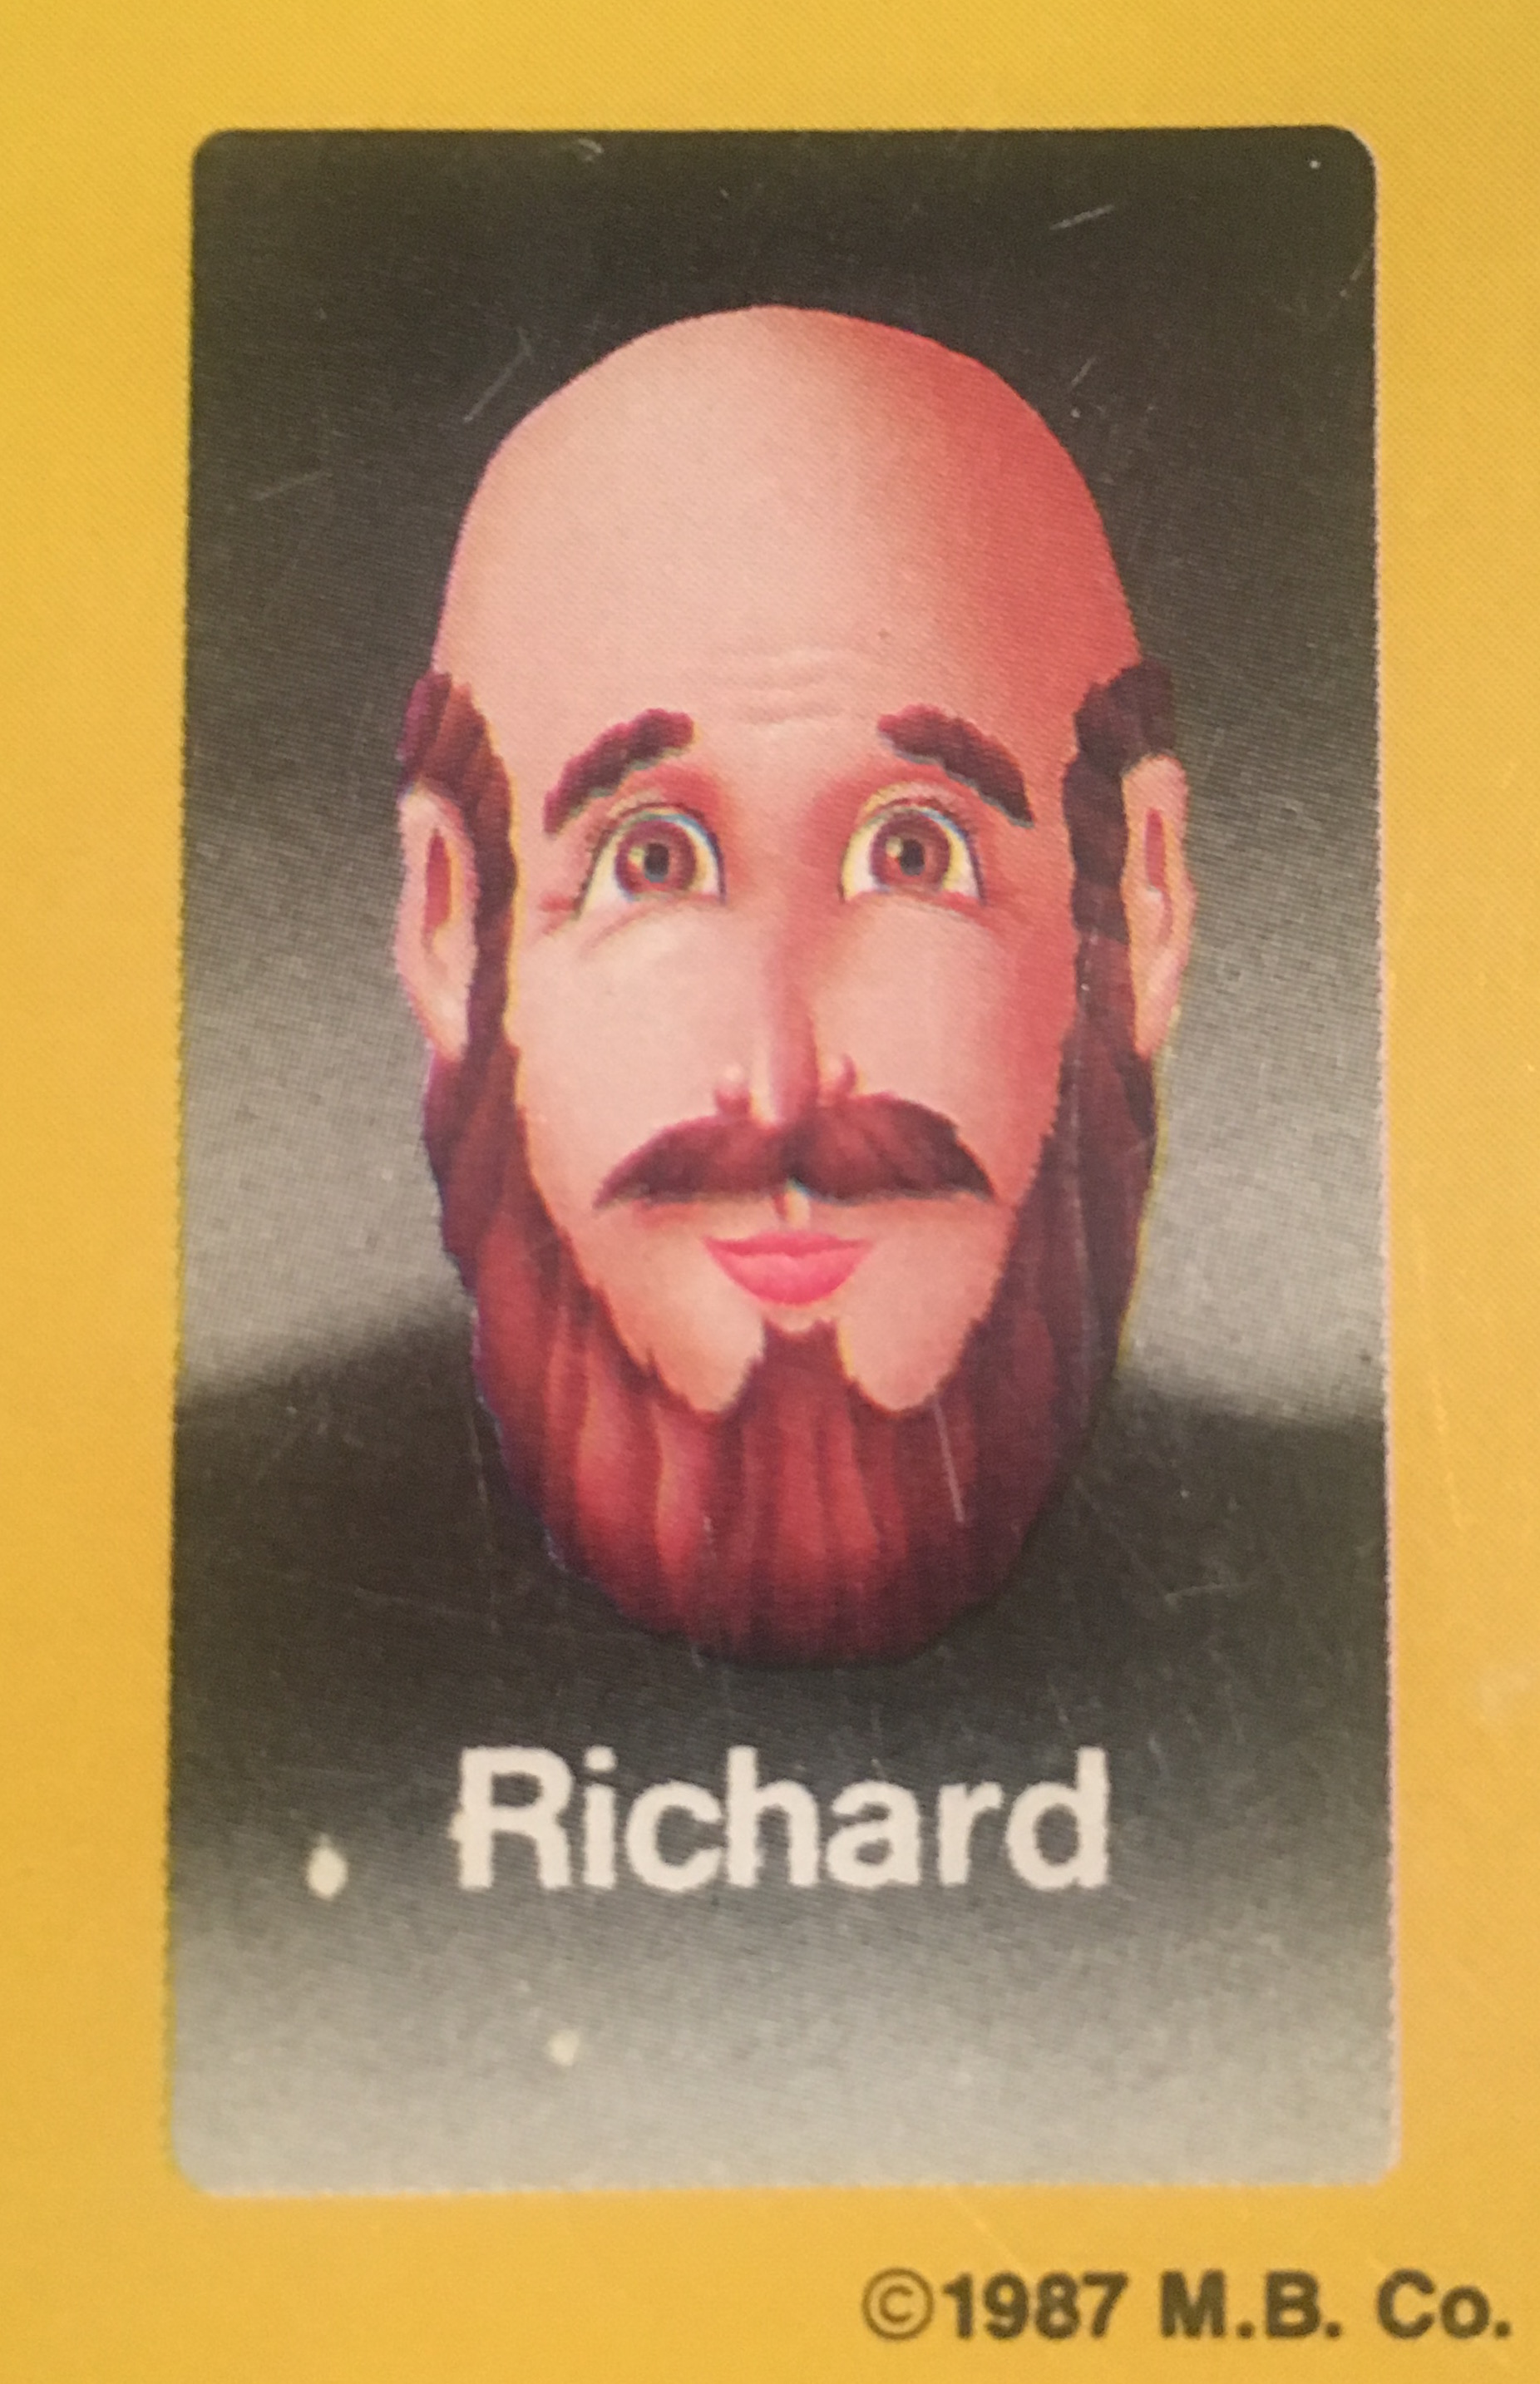 - Richard didn't take the initial photoshoot seriously, not believing that a game called Guess Who?® would ever be successful. Moments before his picture was taken, he shaved his head bald, and put on a realistic fake beard, to be subversive. The photographers weren't in constant communication with the marketing team that selected the candidates, so the photoshoot went ahead as planned. Richard's picture turned out well, so he was left in the game. Ever since, before public appearances, he's been contractually obliged to shave his head and wear a beard.